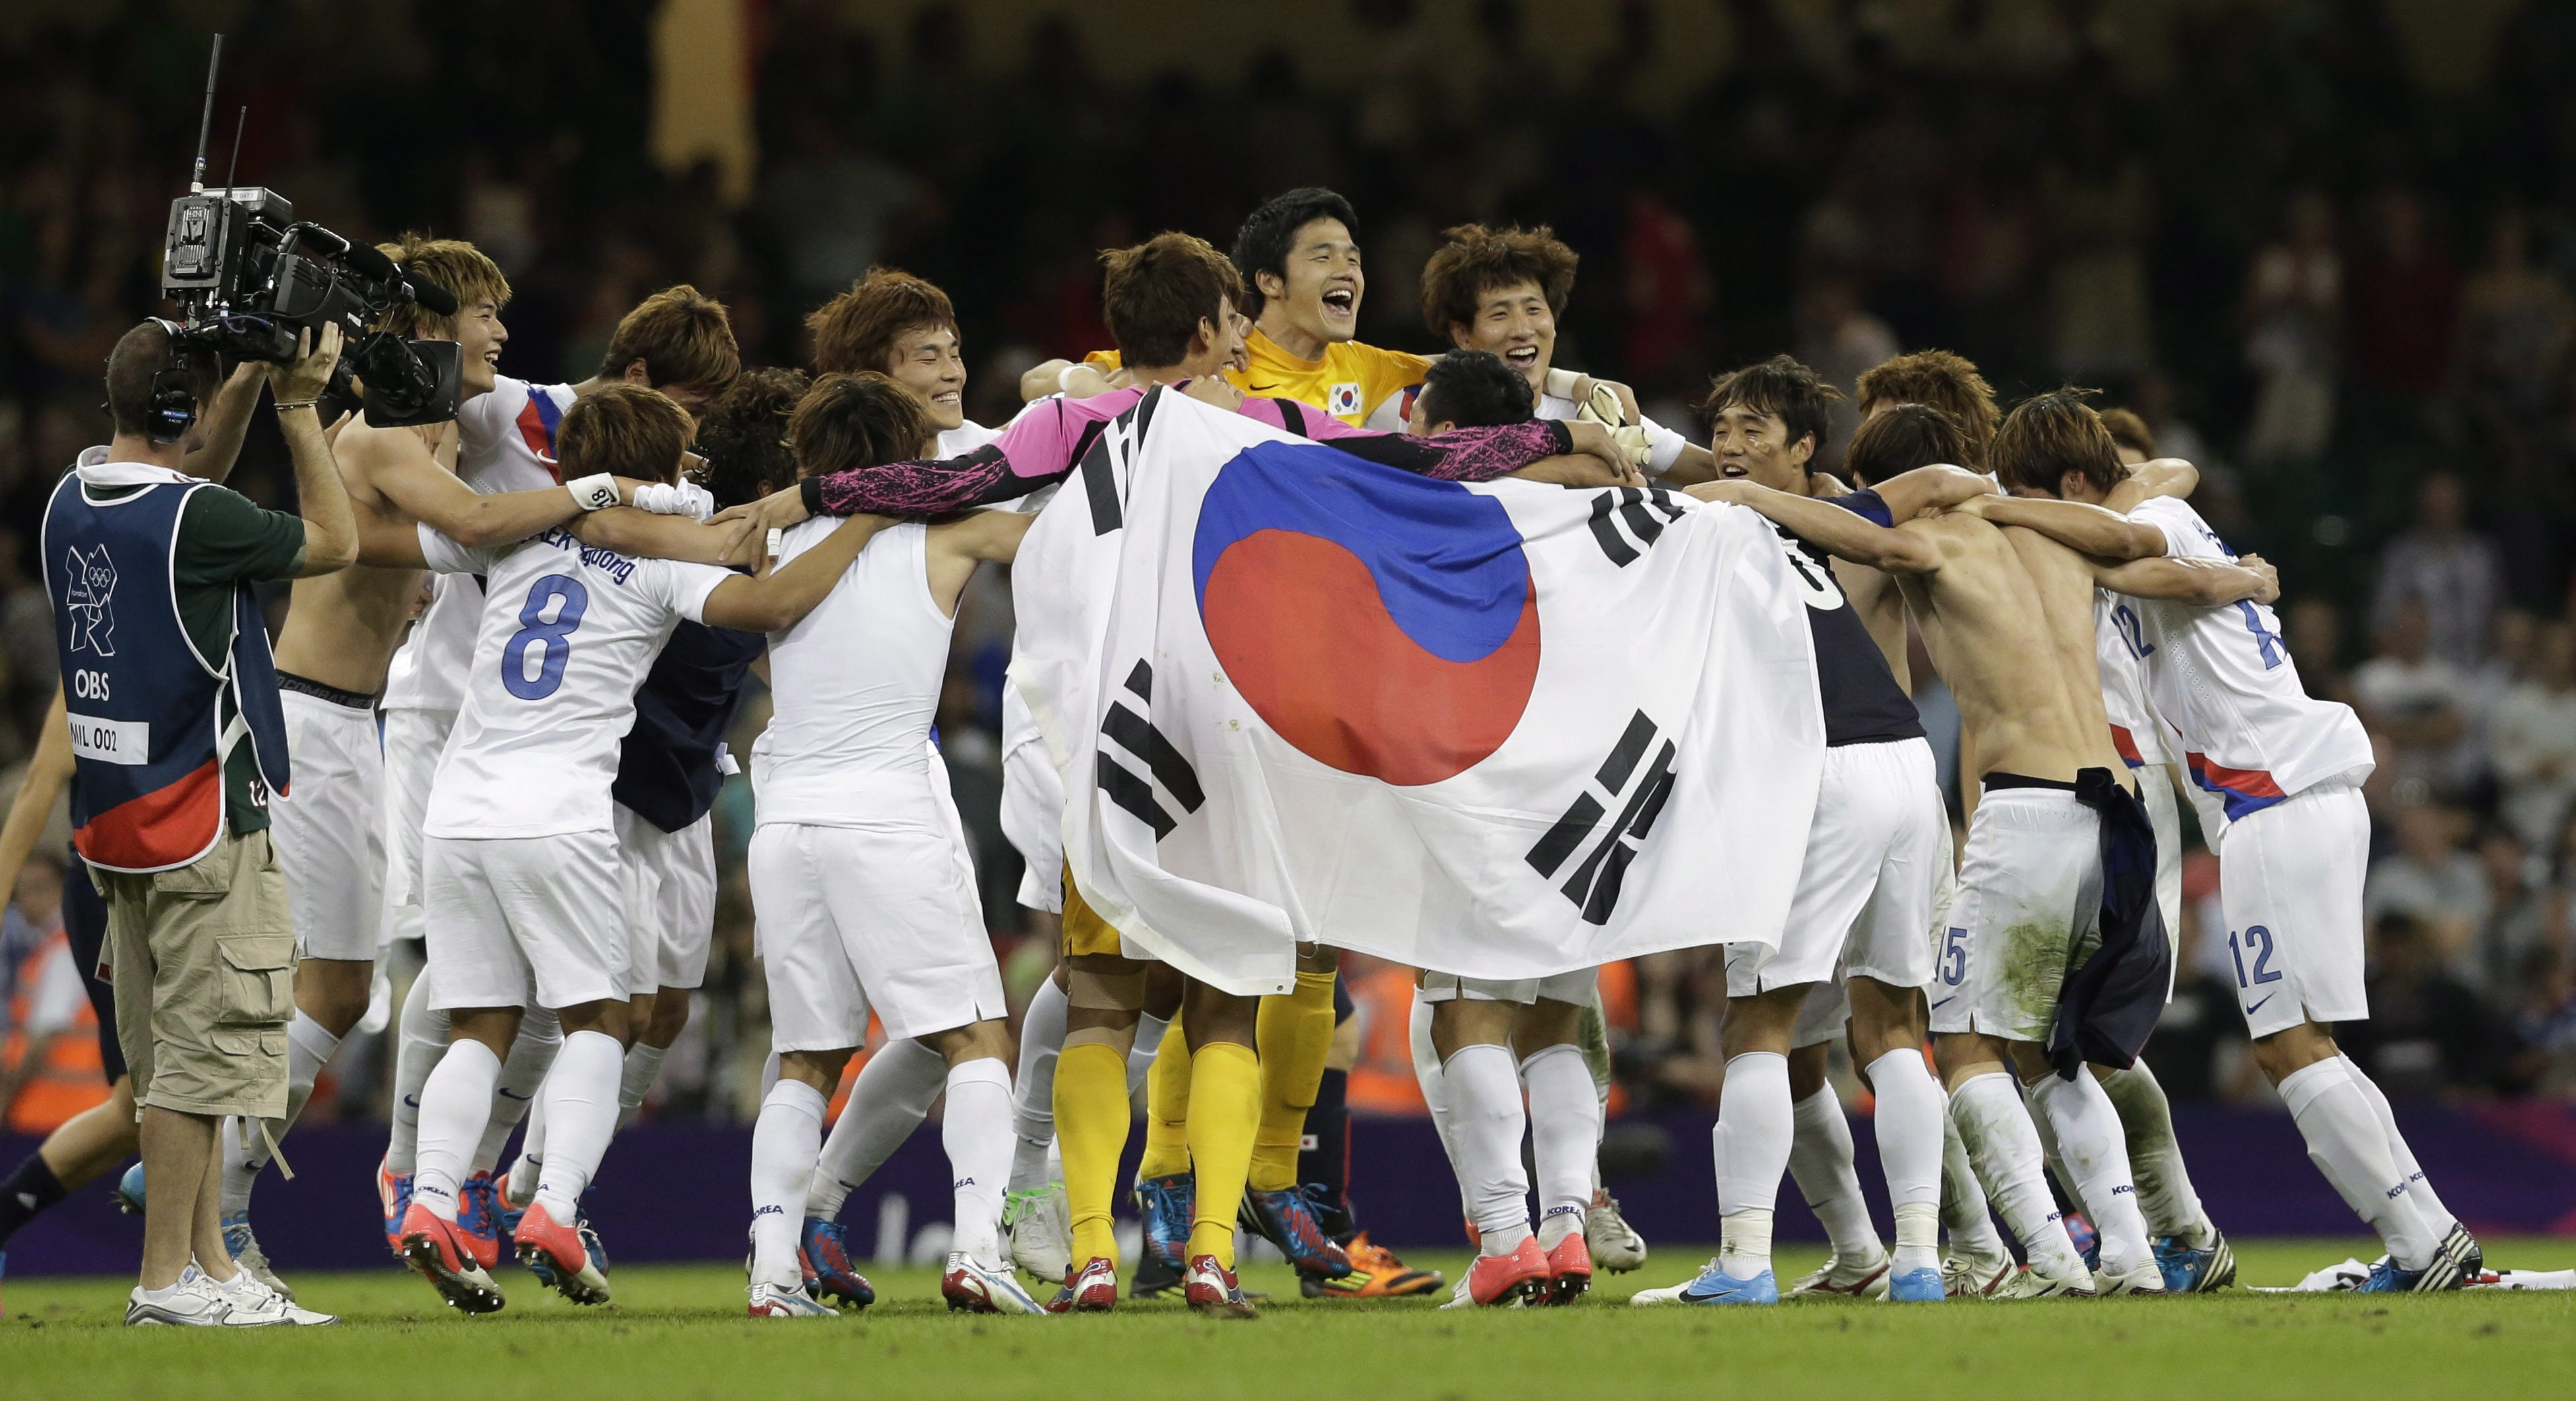 South Korea's players celebrate after winning their men's soccer bronze medal match against Japan, in Cardiff, Wales, at the 2012 London Summer Olympics, Friday, Aug. 10, 2012. South Korea won 2-0. (AP Photo/Luca Bruno)